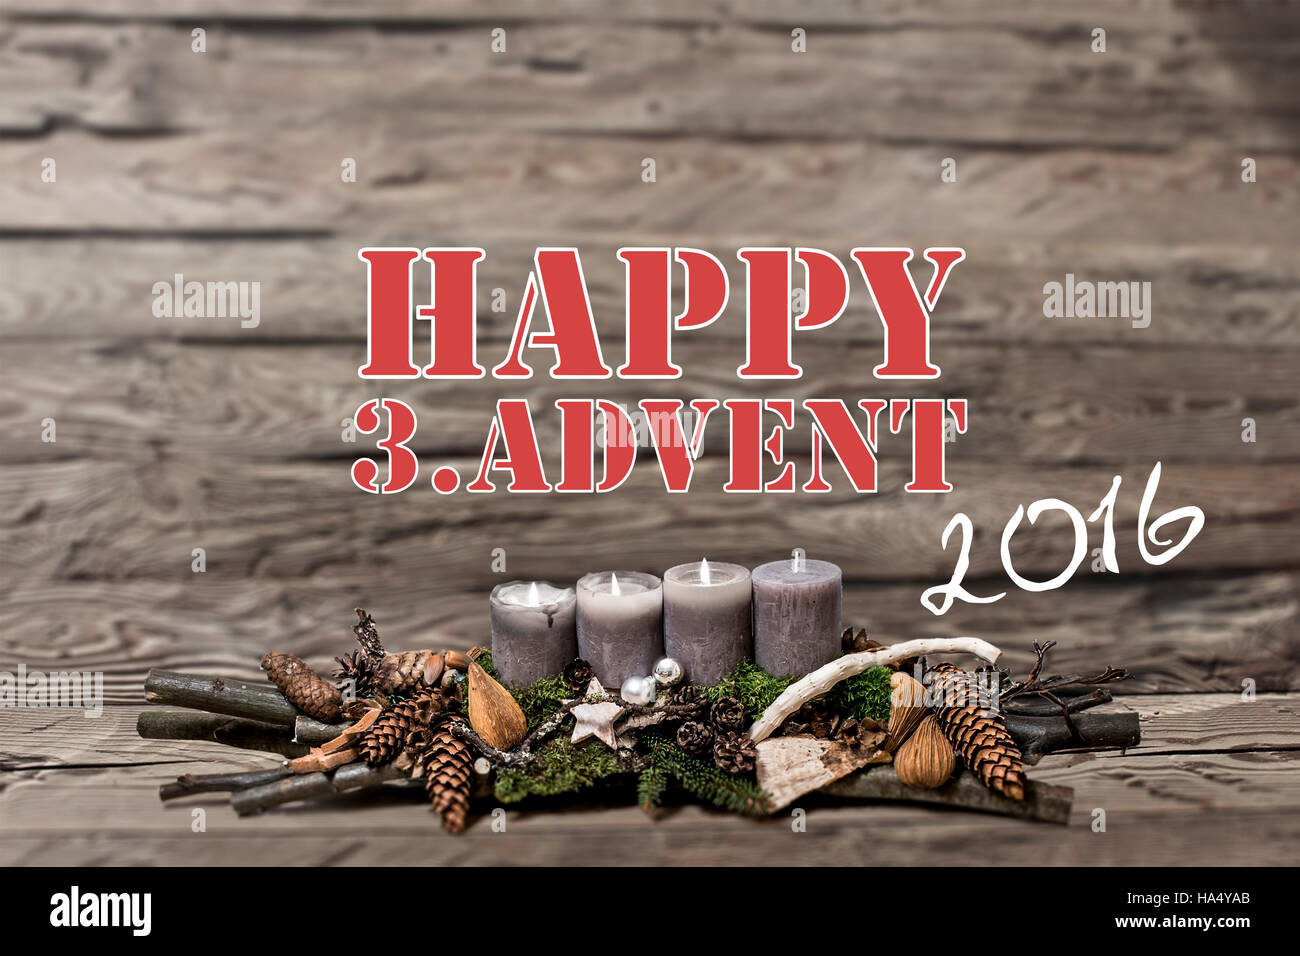 Merry Christmas decoration advent 2016 with burning grey candle Blurred background text message englisch 3rd - Stock Image